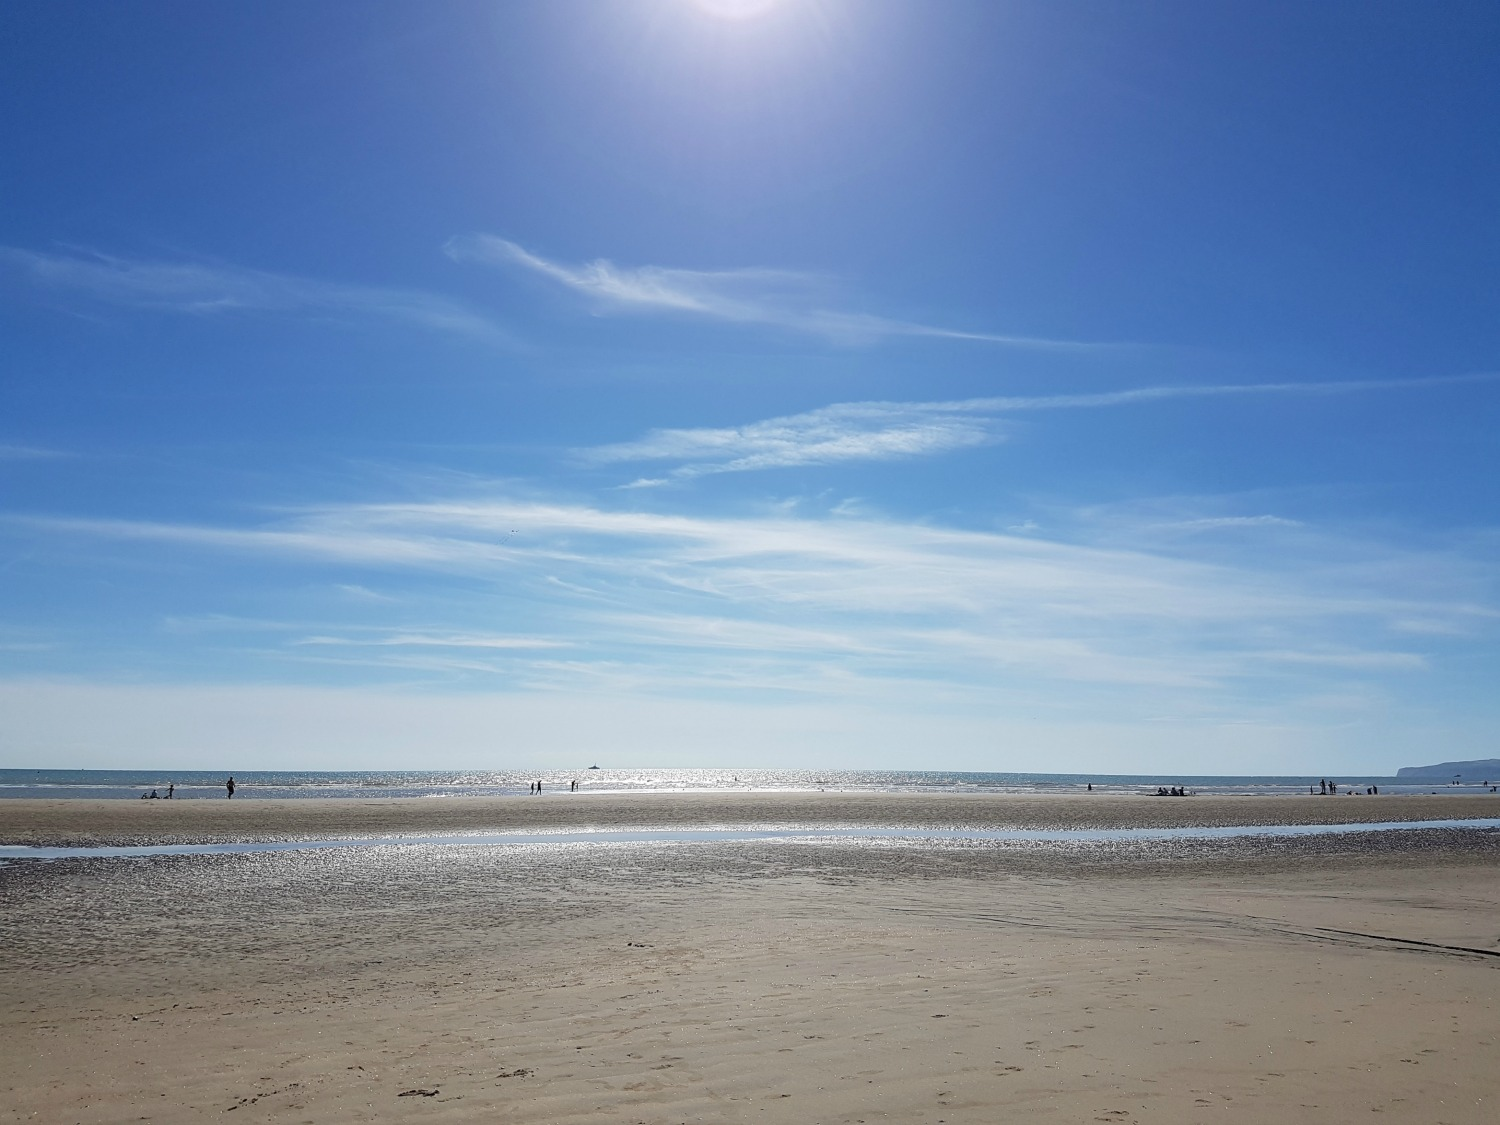 A view of the beach at Camber Sands in East Sussex - spending a weekend in East Sussex with my daughter before the start of school, to explore the history and coastline